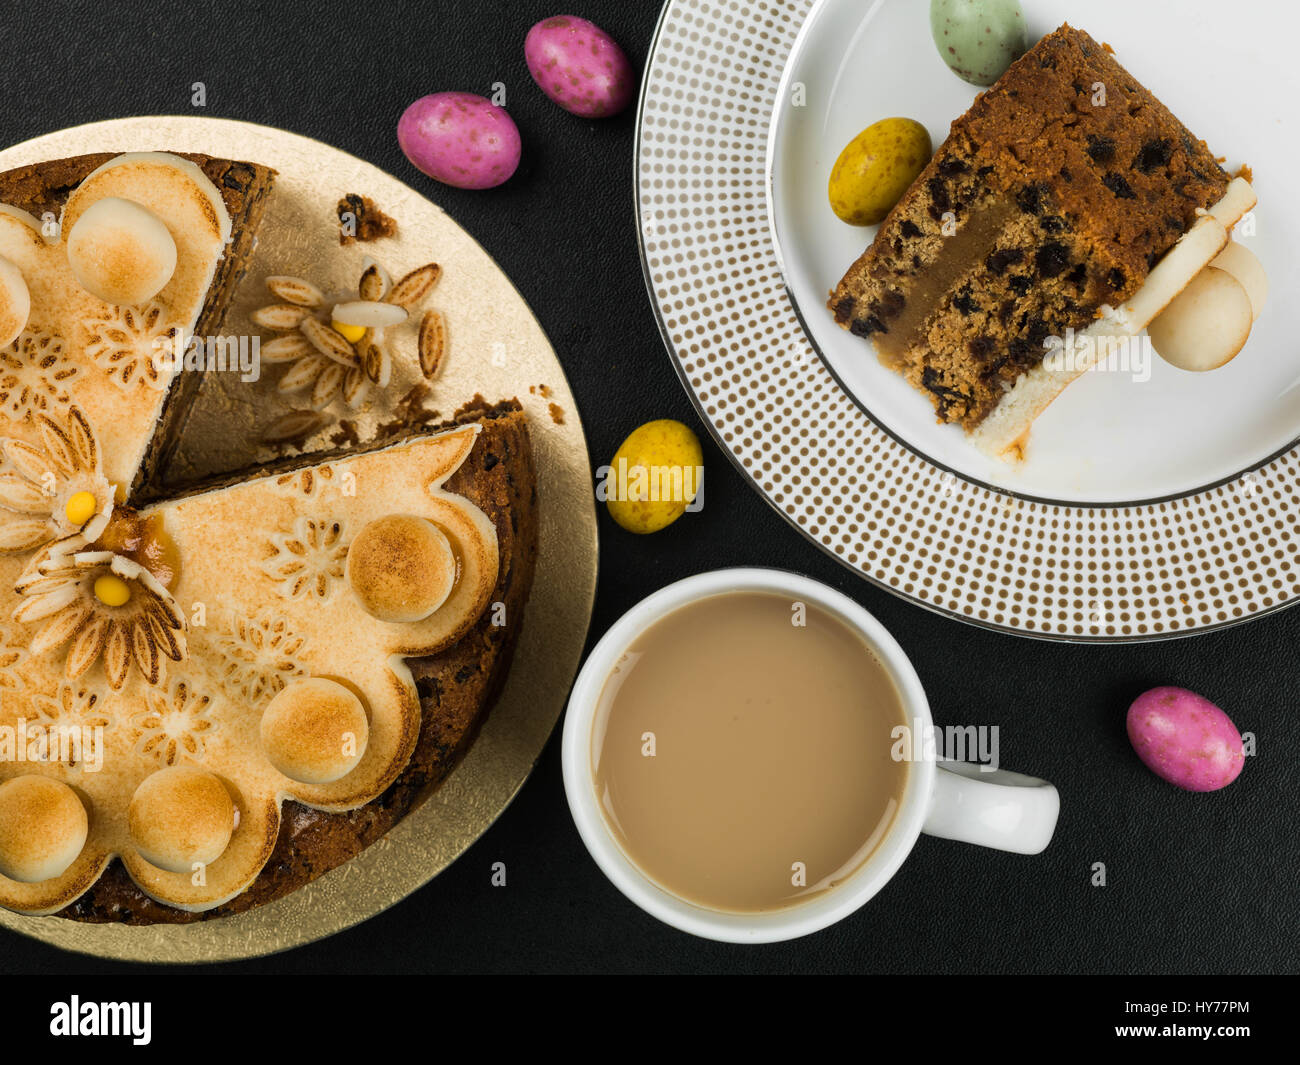 Easter Simnel Cake With Marzipan Icing and Decorations Against a Black Background - Stock Image